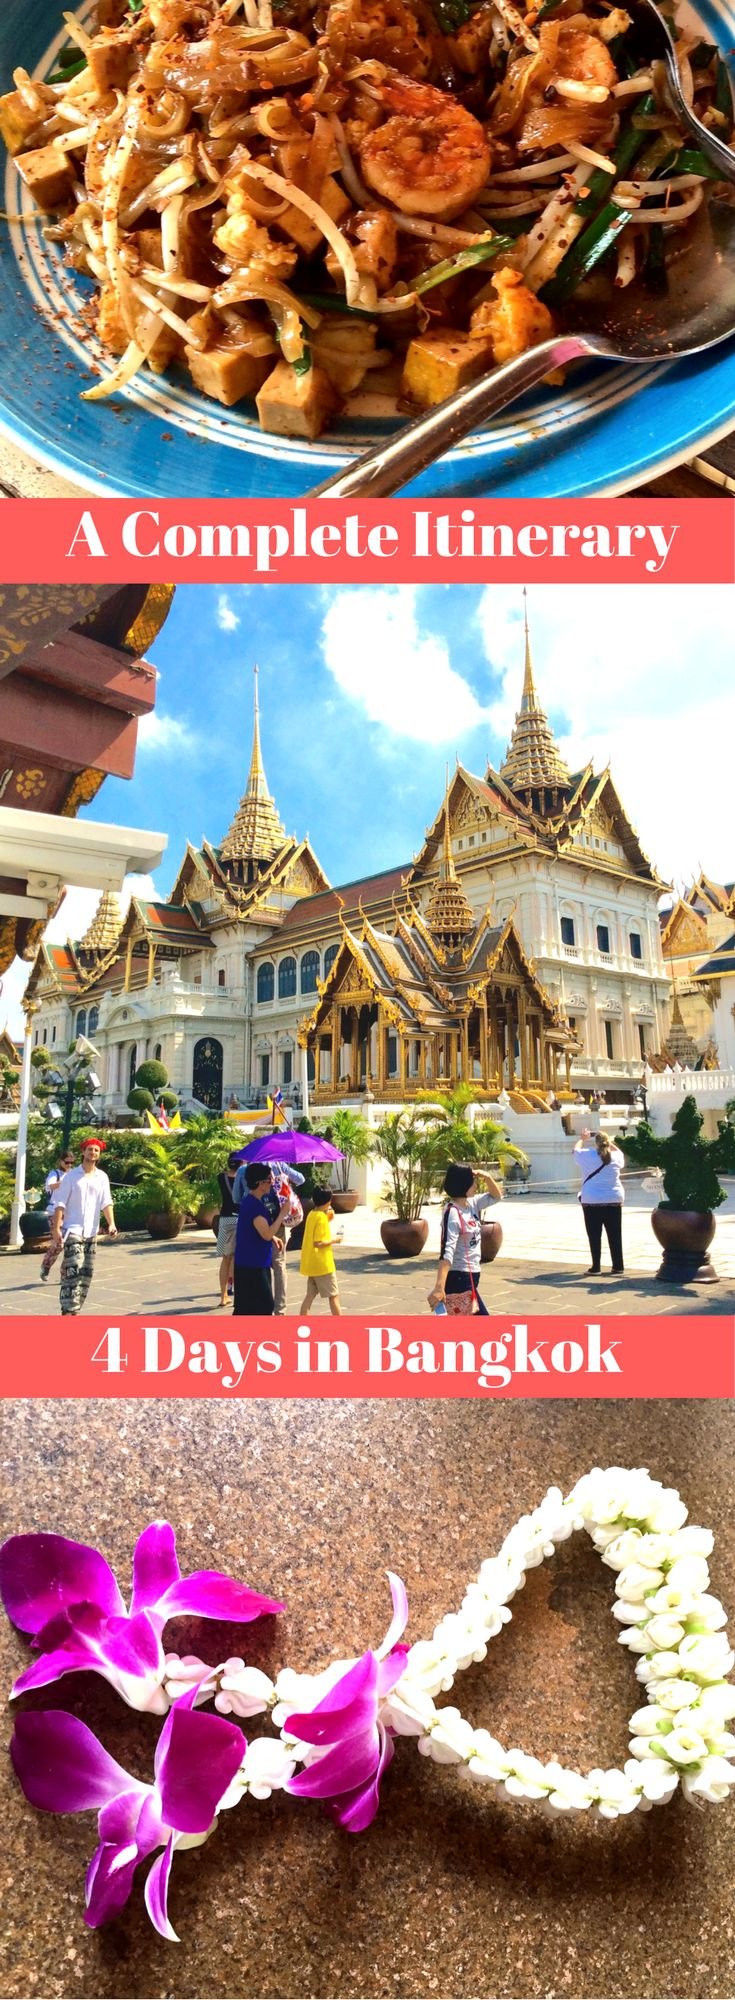 A complete 4 day Itinerary for Bangkok which includes the floating markets, nightspots, the Grand Palace, weekend markets, a muay thai flight, ladyboy cabaret and more!